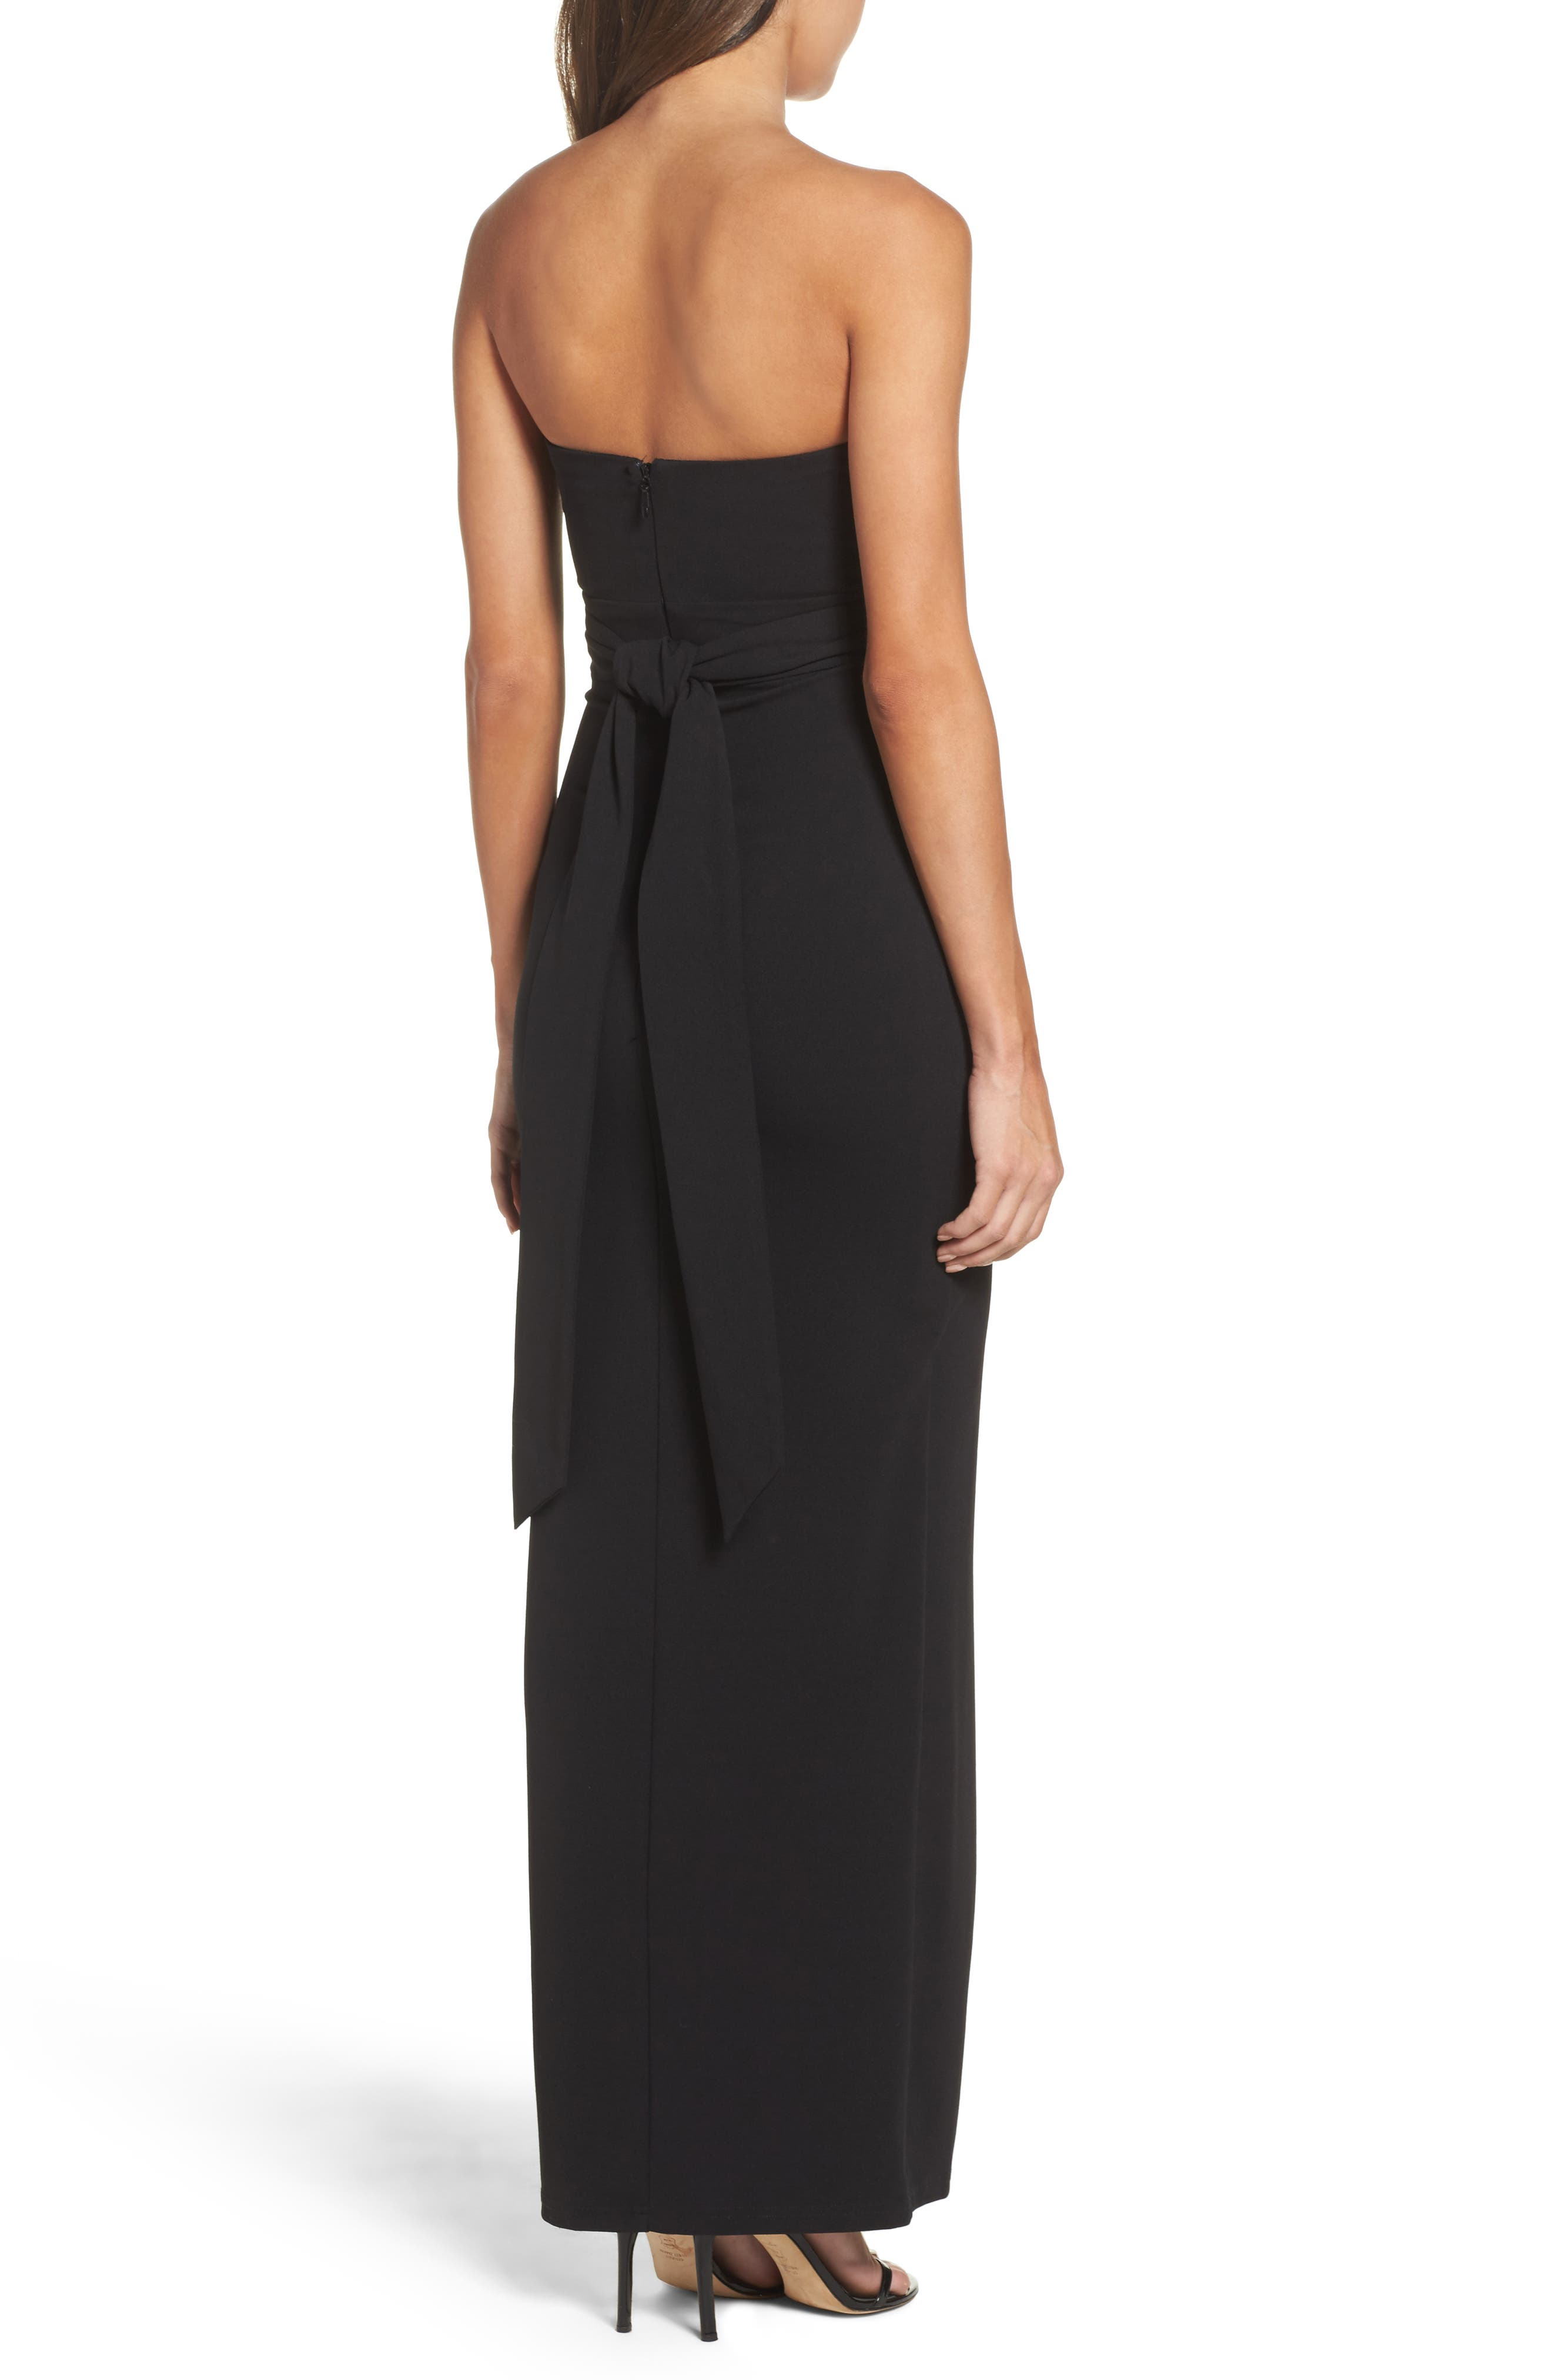 LULUS,                             Own the Night Strapless Maxi Dress,                             Alternate thumbnail 2, color,                             BLACK